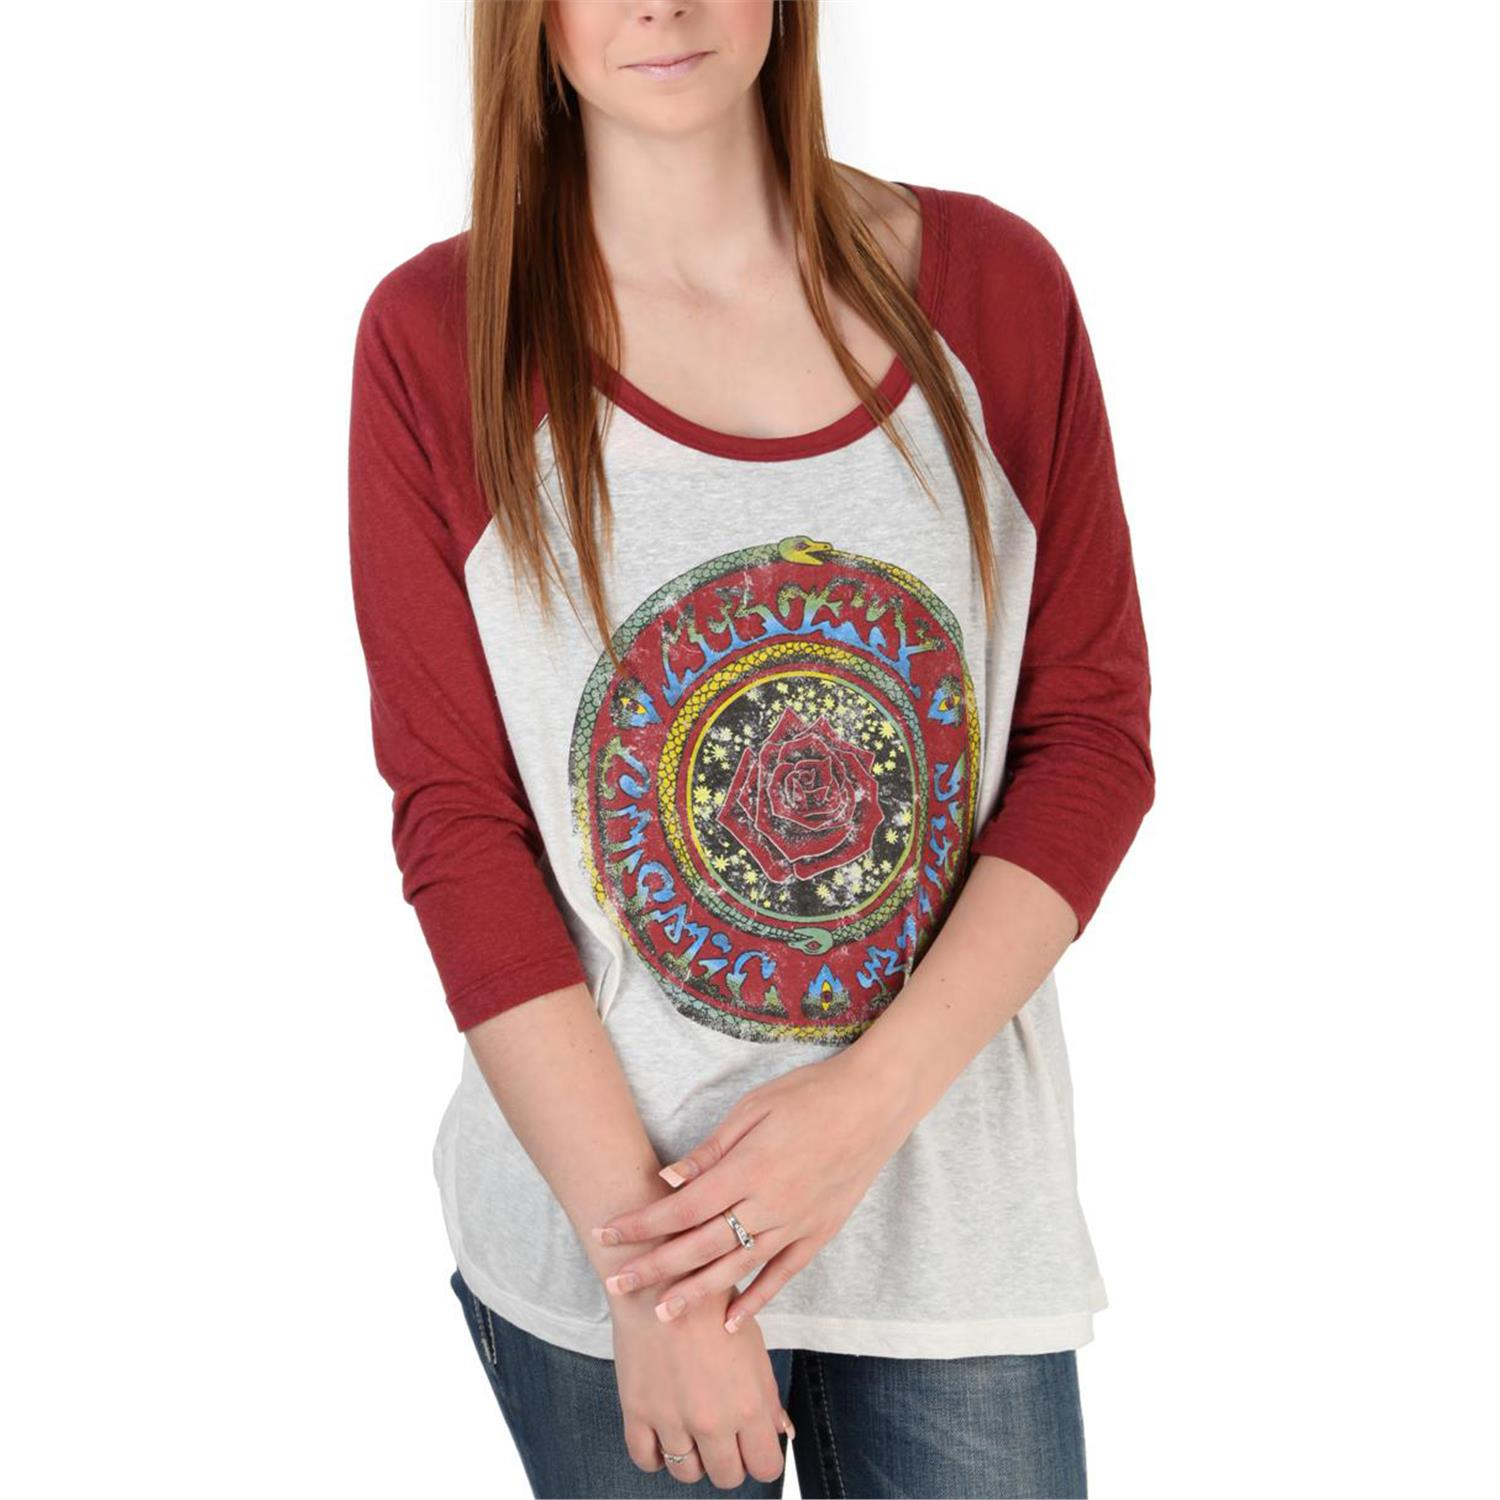 obey clothing for women Obey All Obey Obey T-Shirts